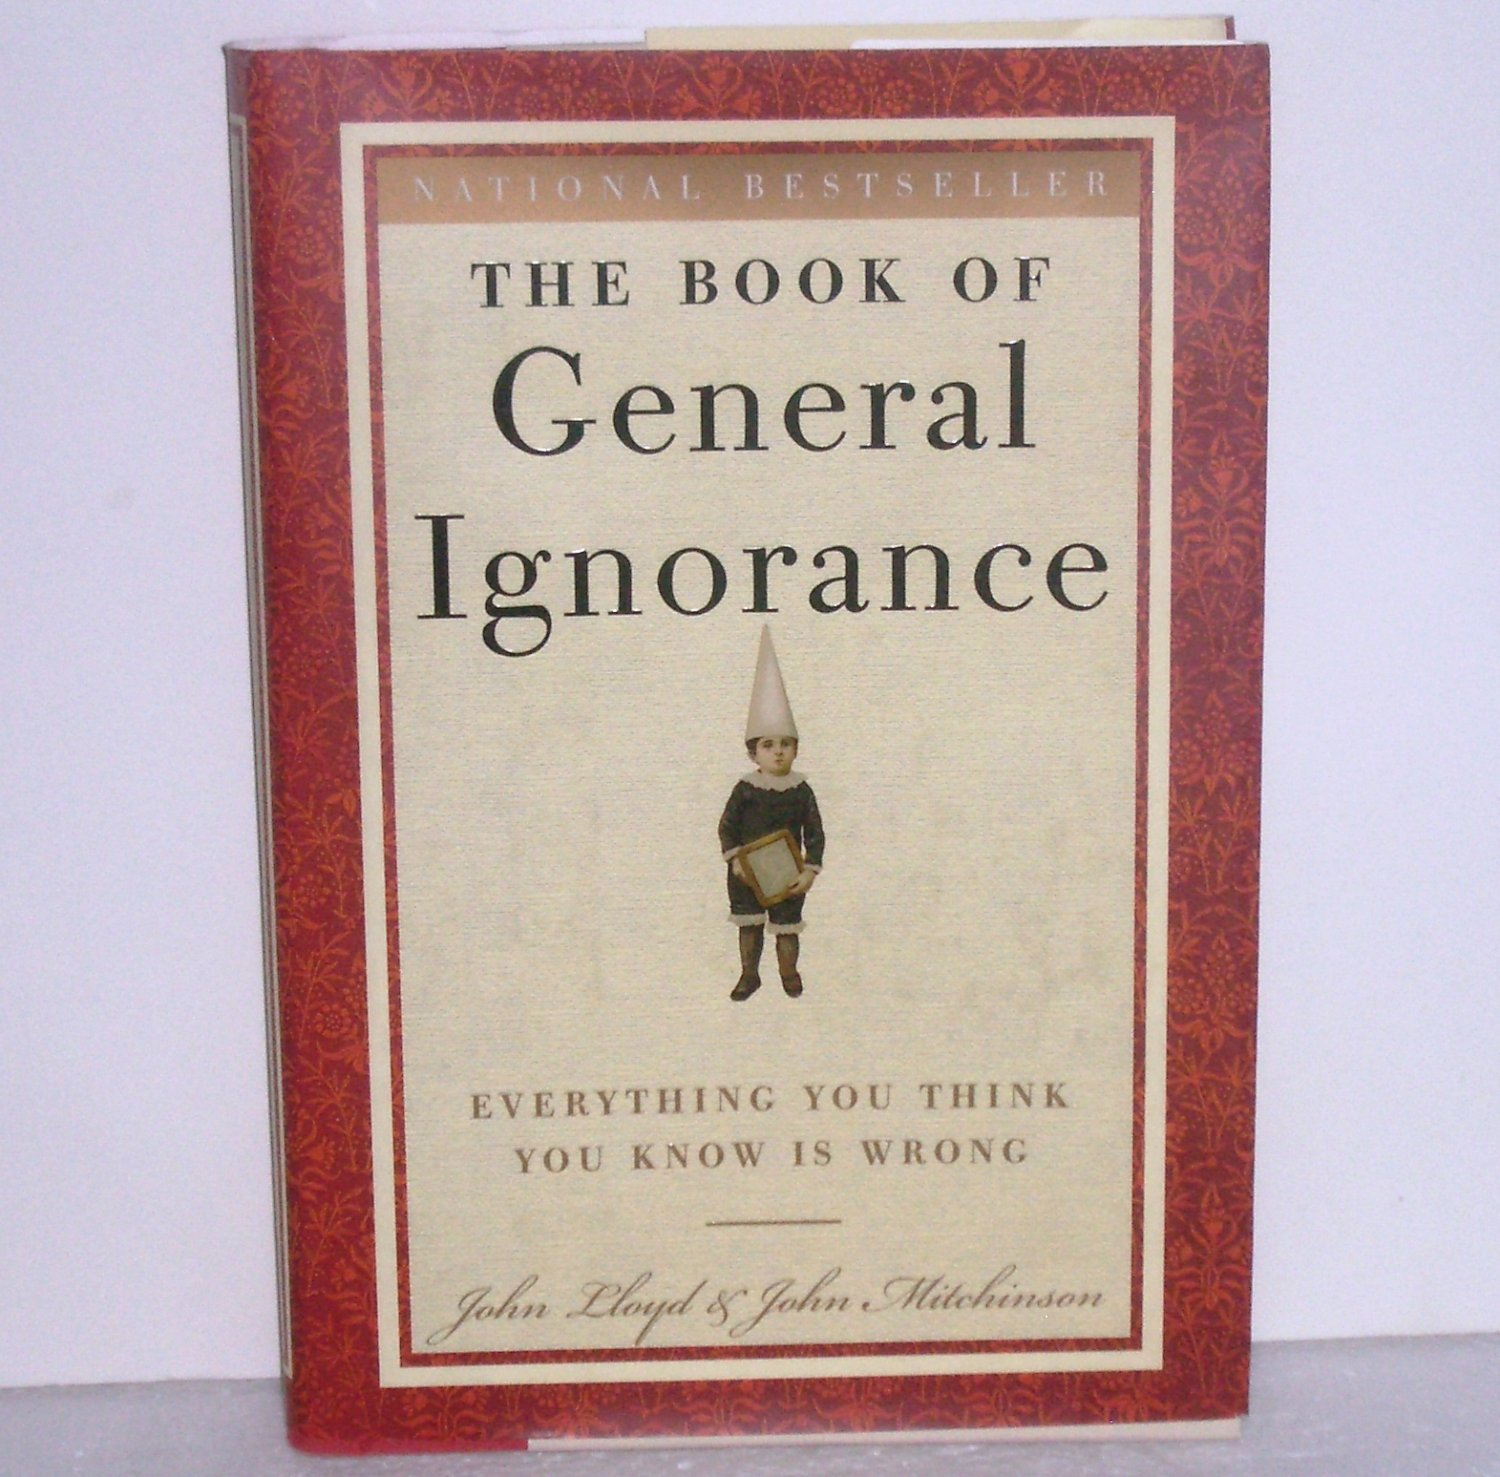 The Book of General Ignorance by JOHN LLOYD, JOHN MITCHINSON Hardcover with Dust Jacket 2007